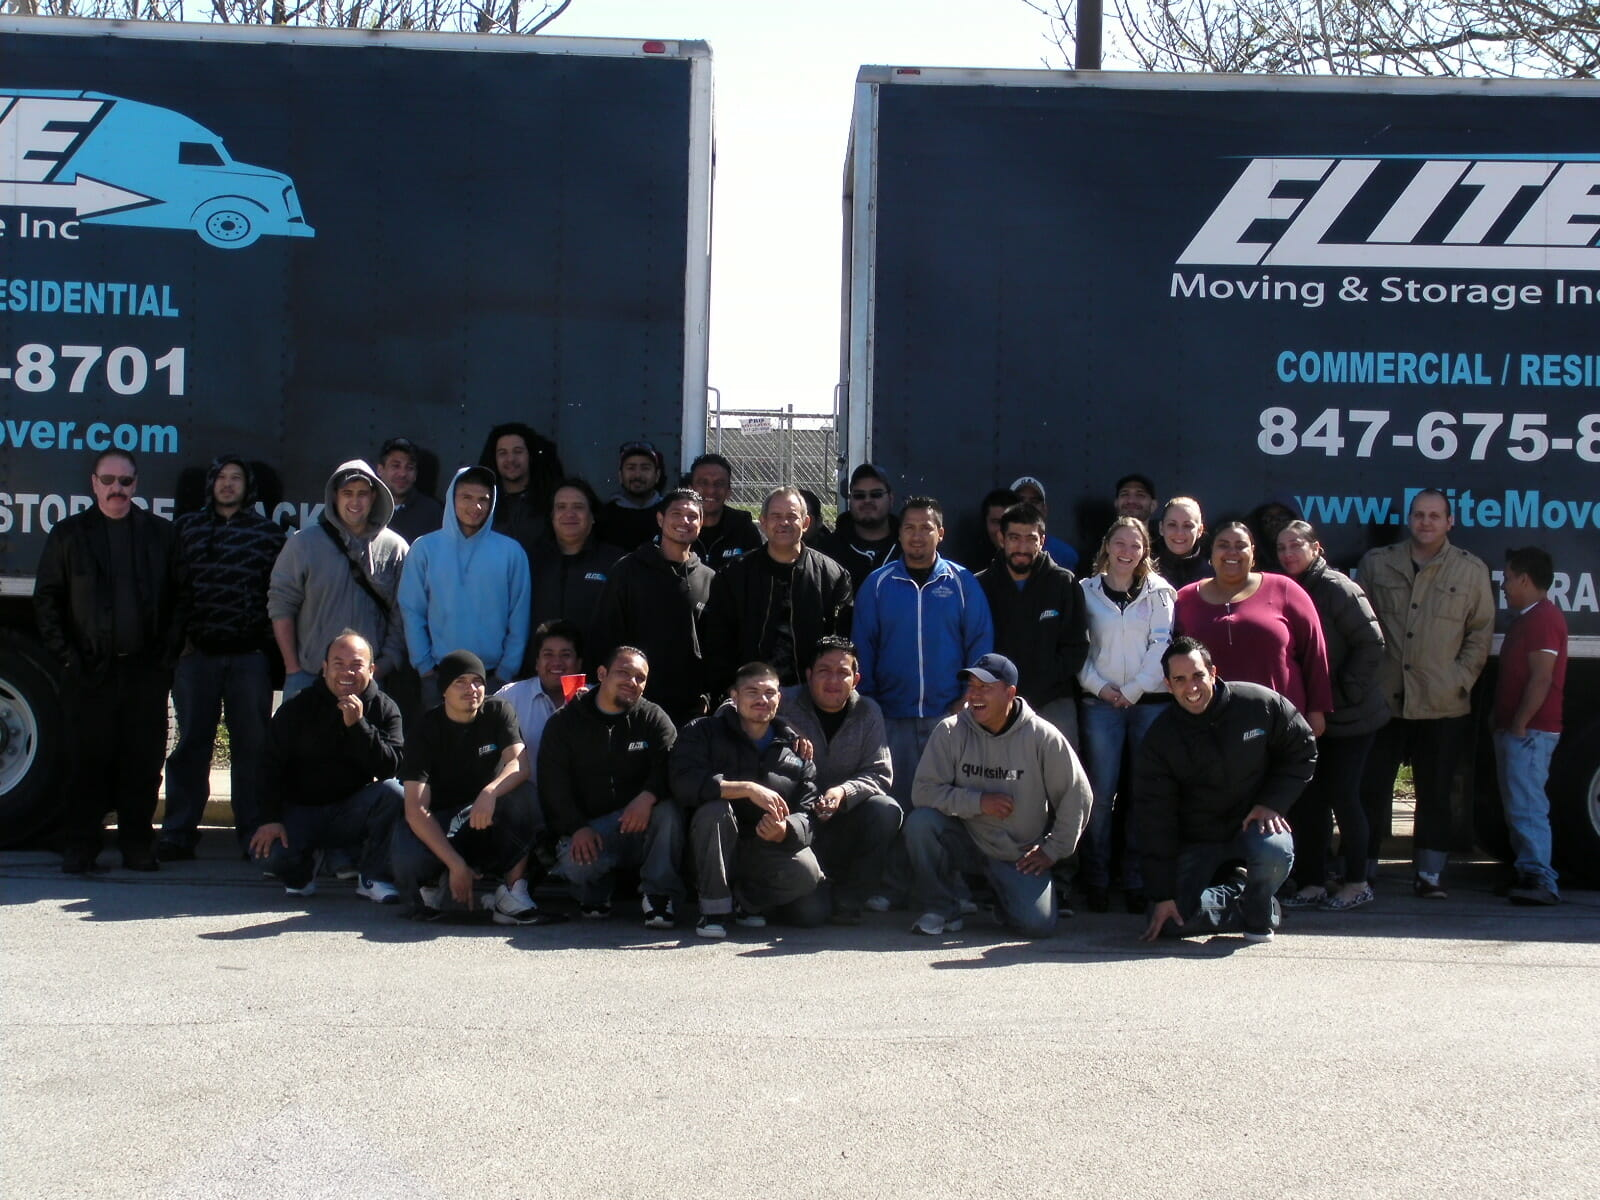 Elite Moving & Storage Team